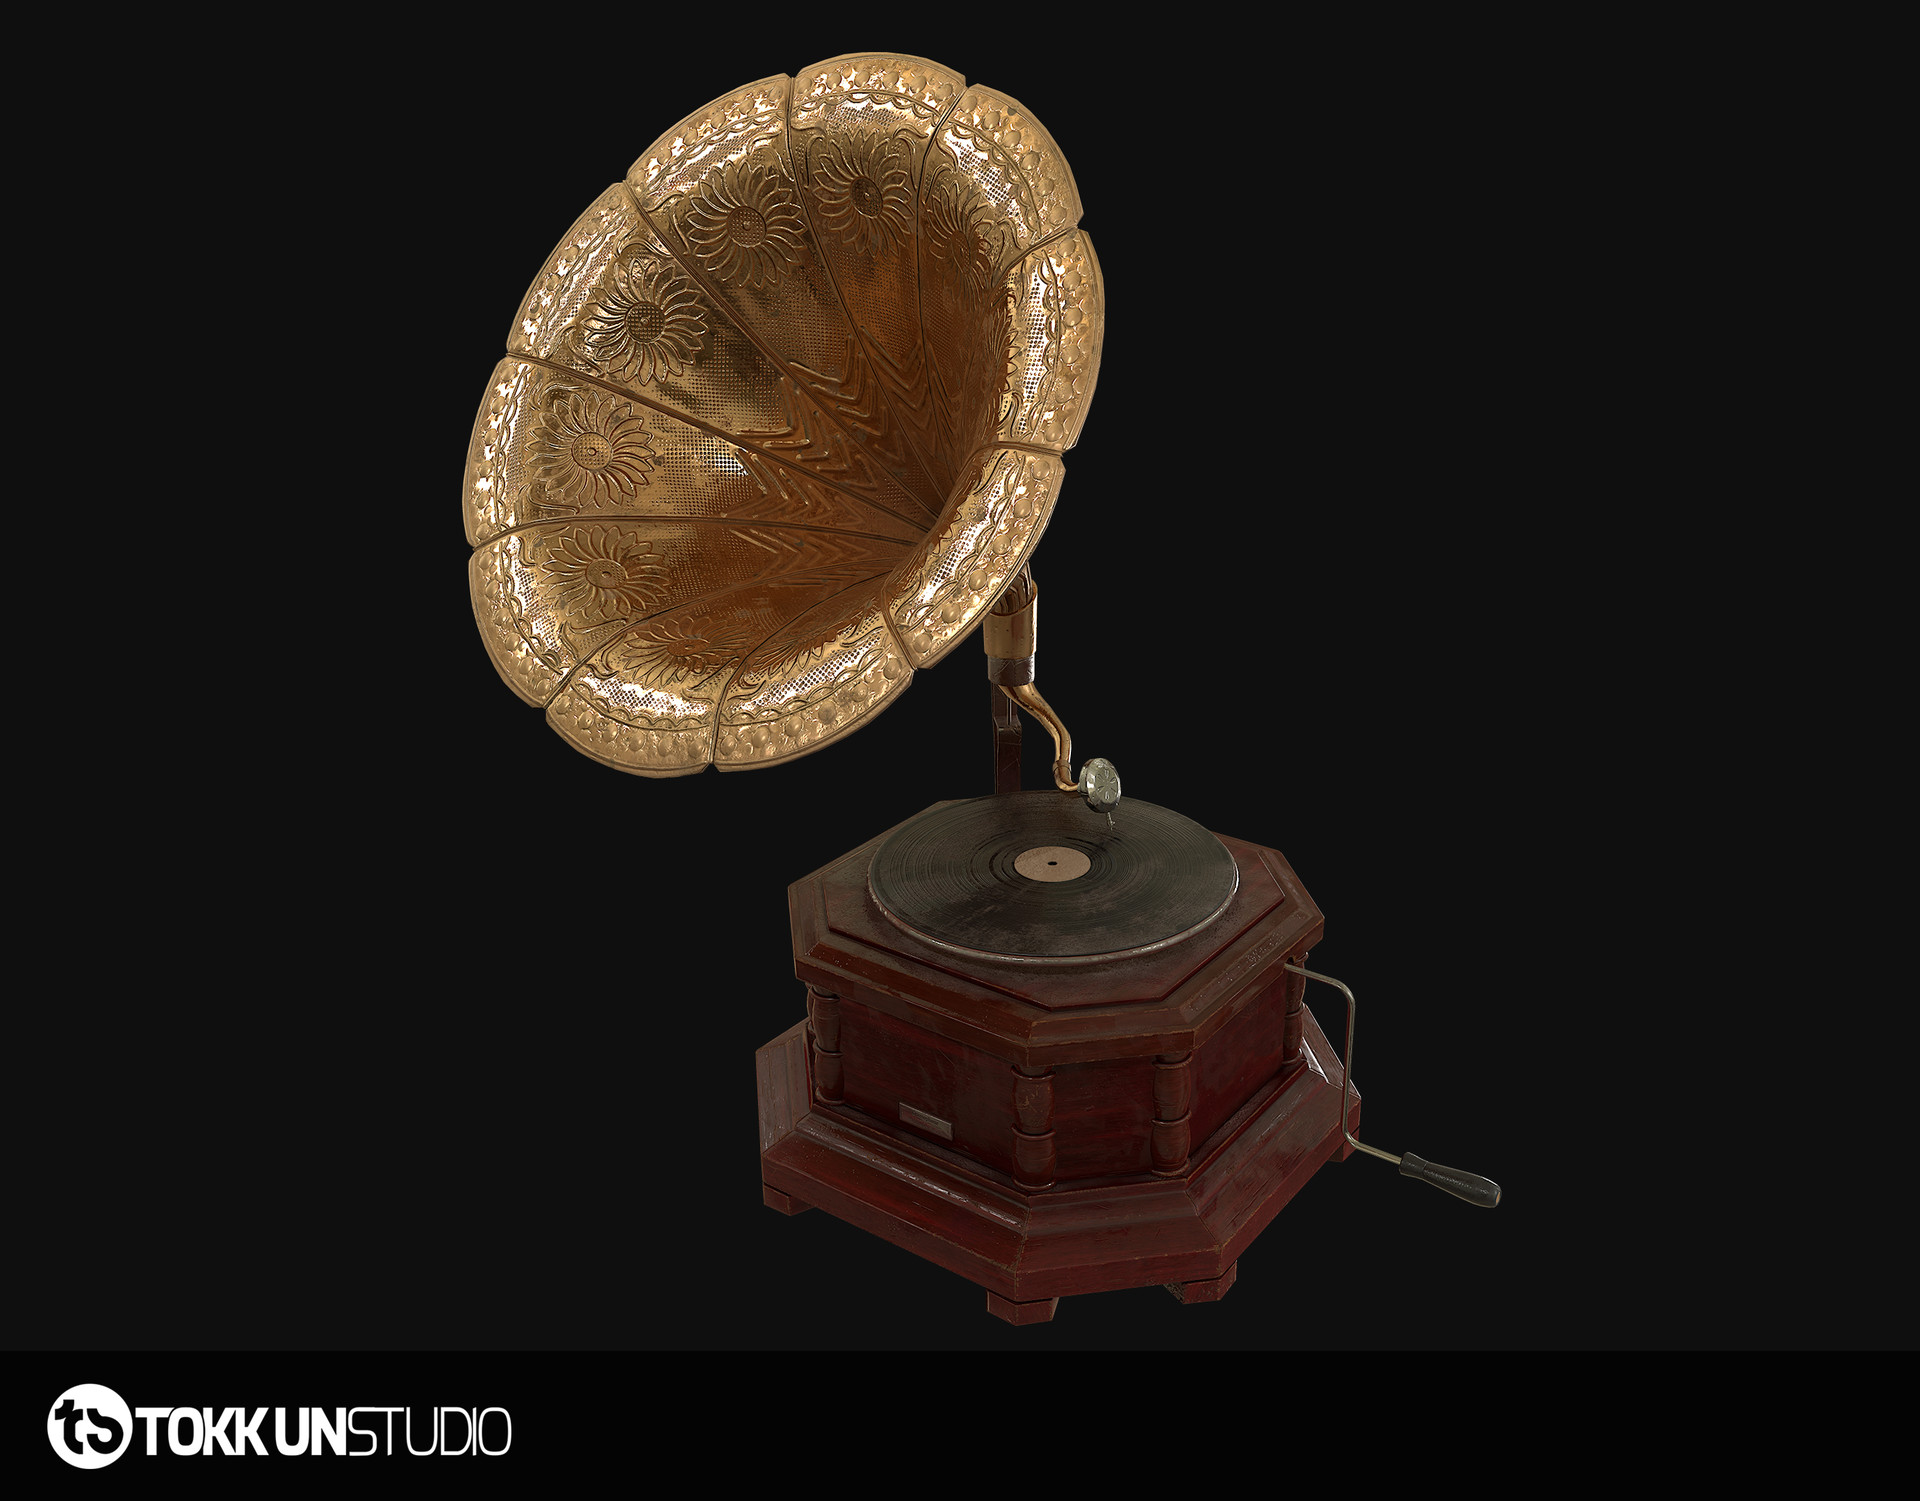 Tokkun studio beauty gramophone 02